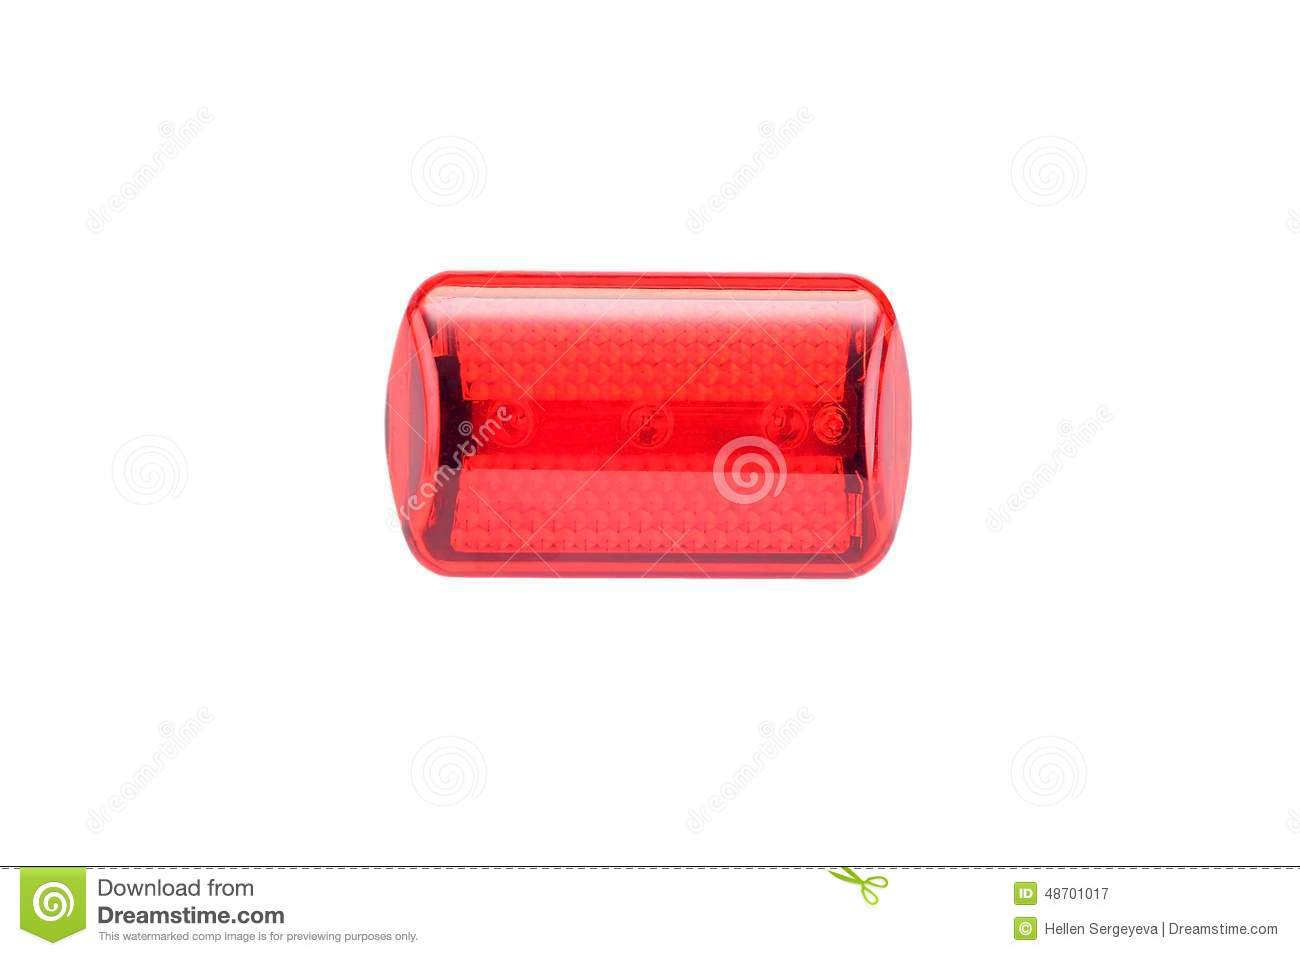 R flecteur de v lo de lumi re rouge photo stock image 48701017 - Reflecteur de lumiere ...